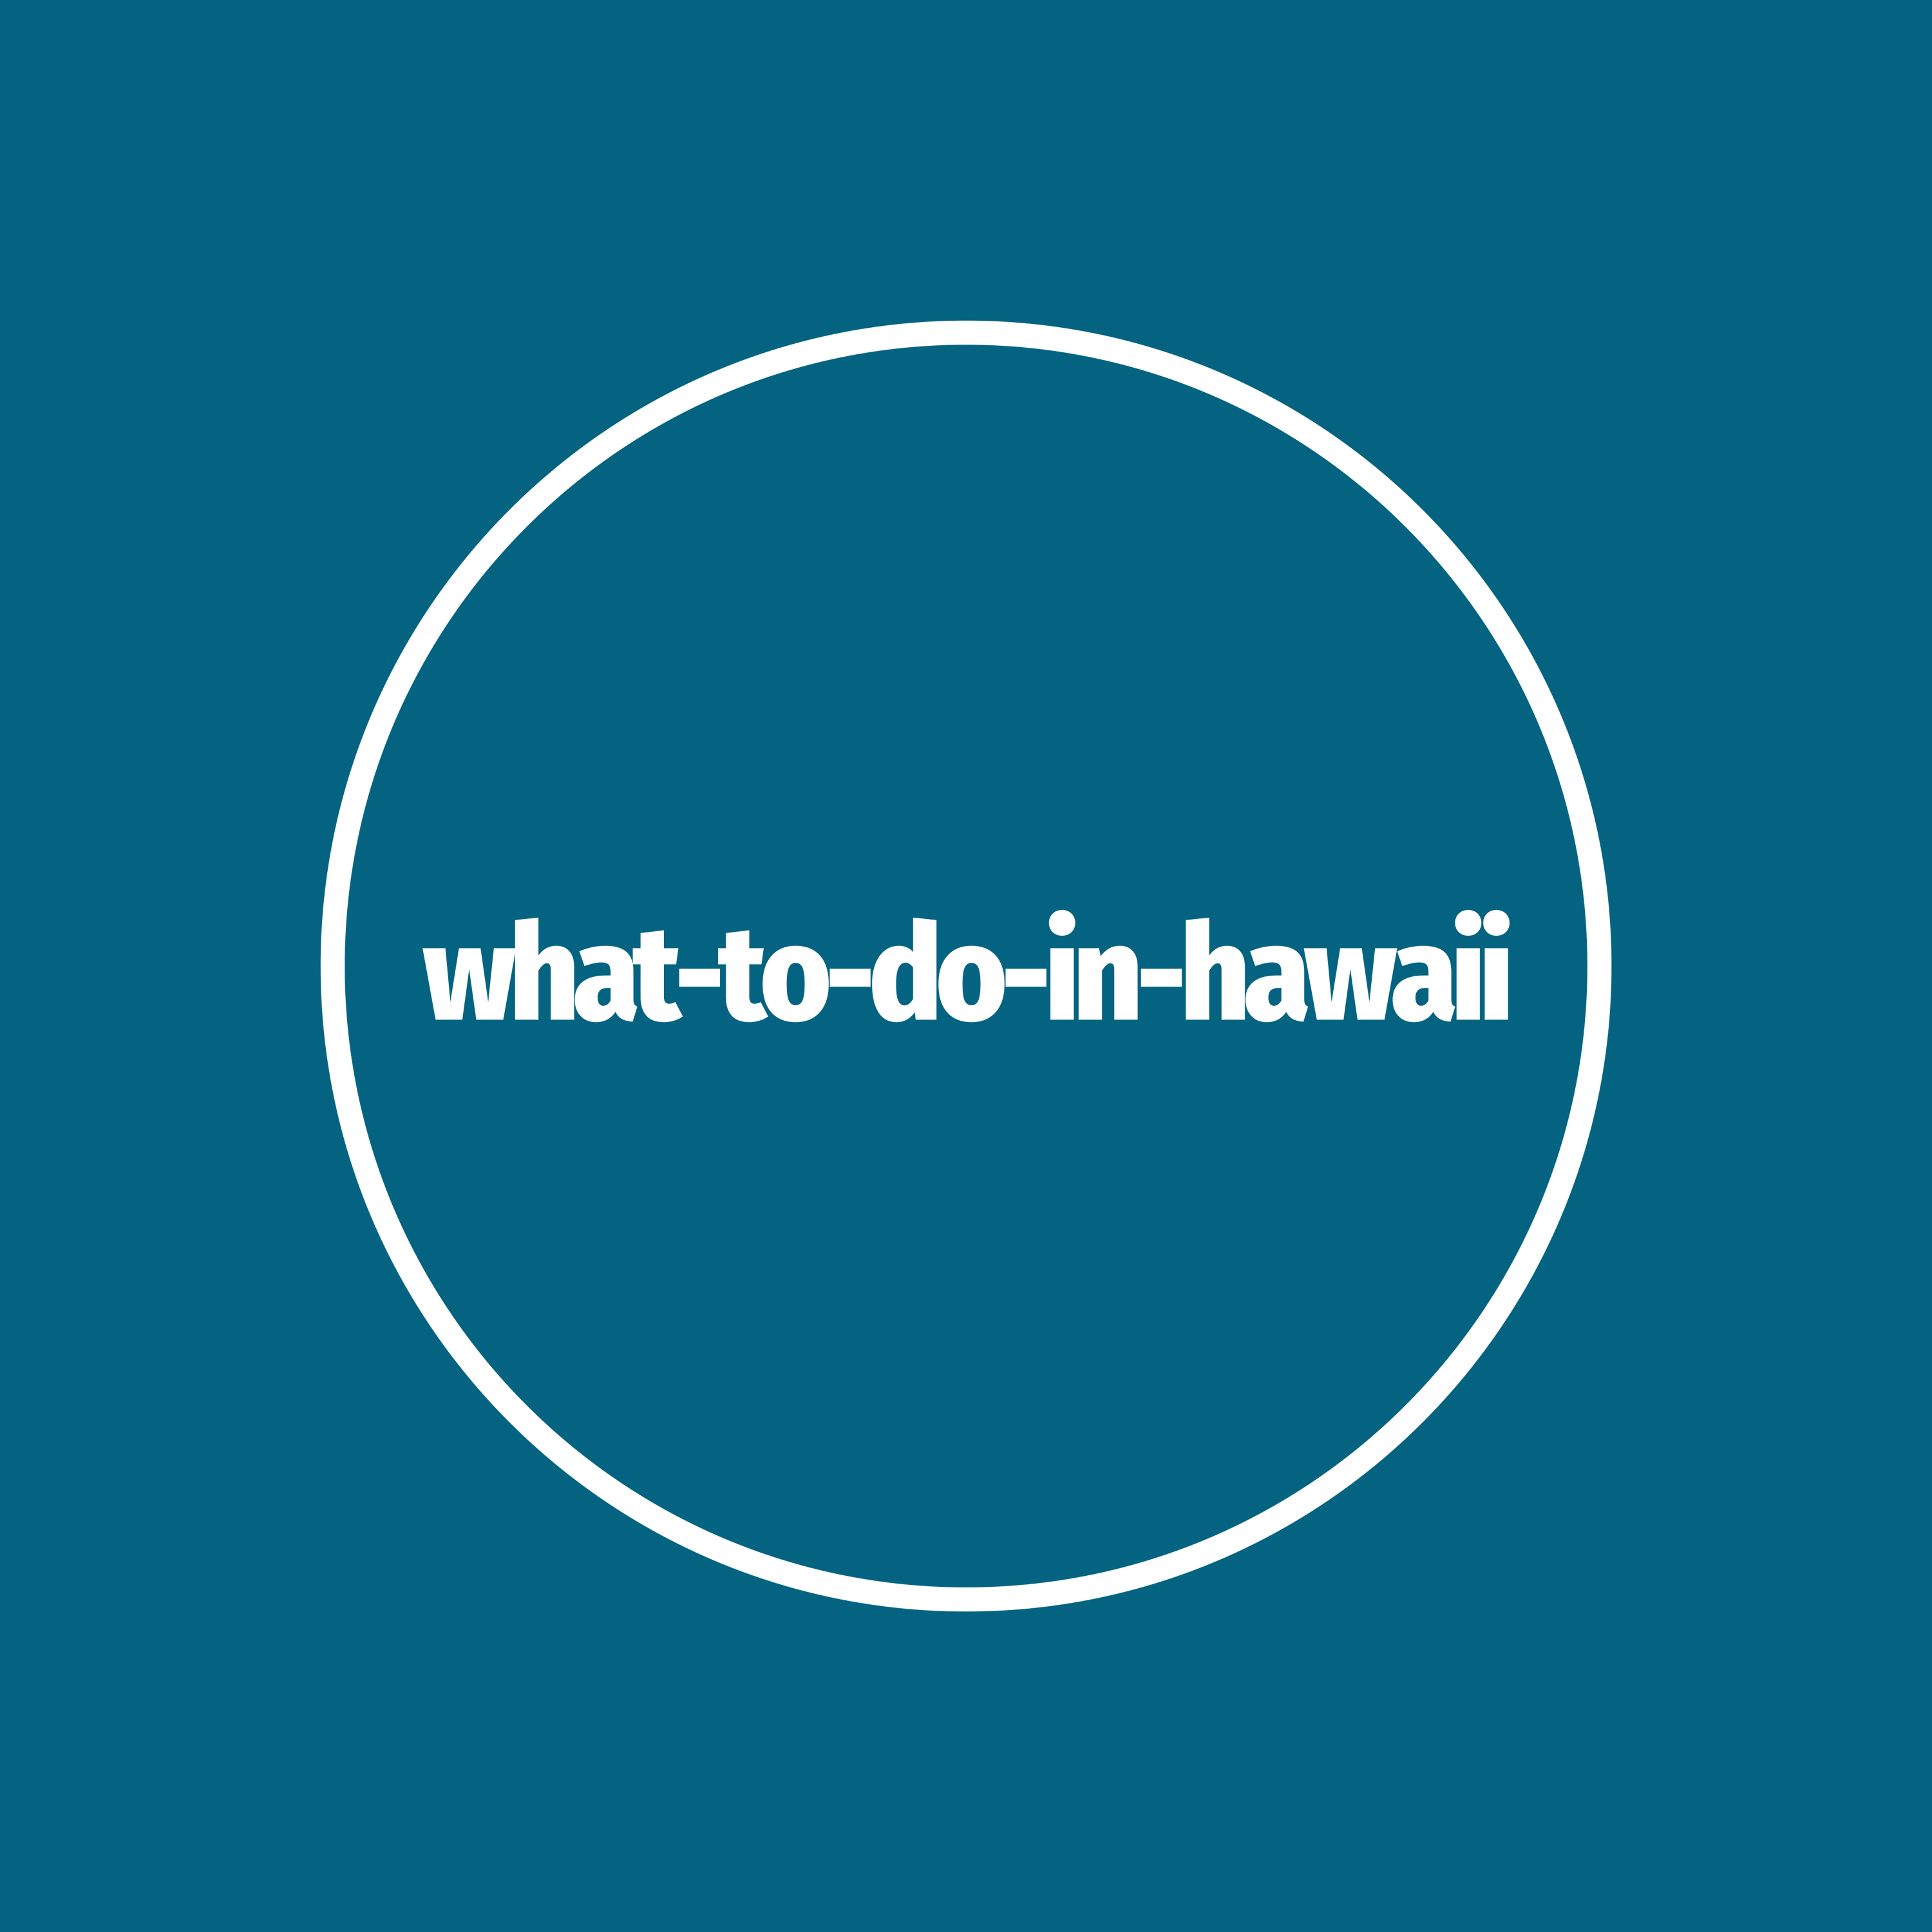 what-to-do-in-hawaii